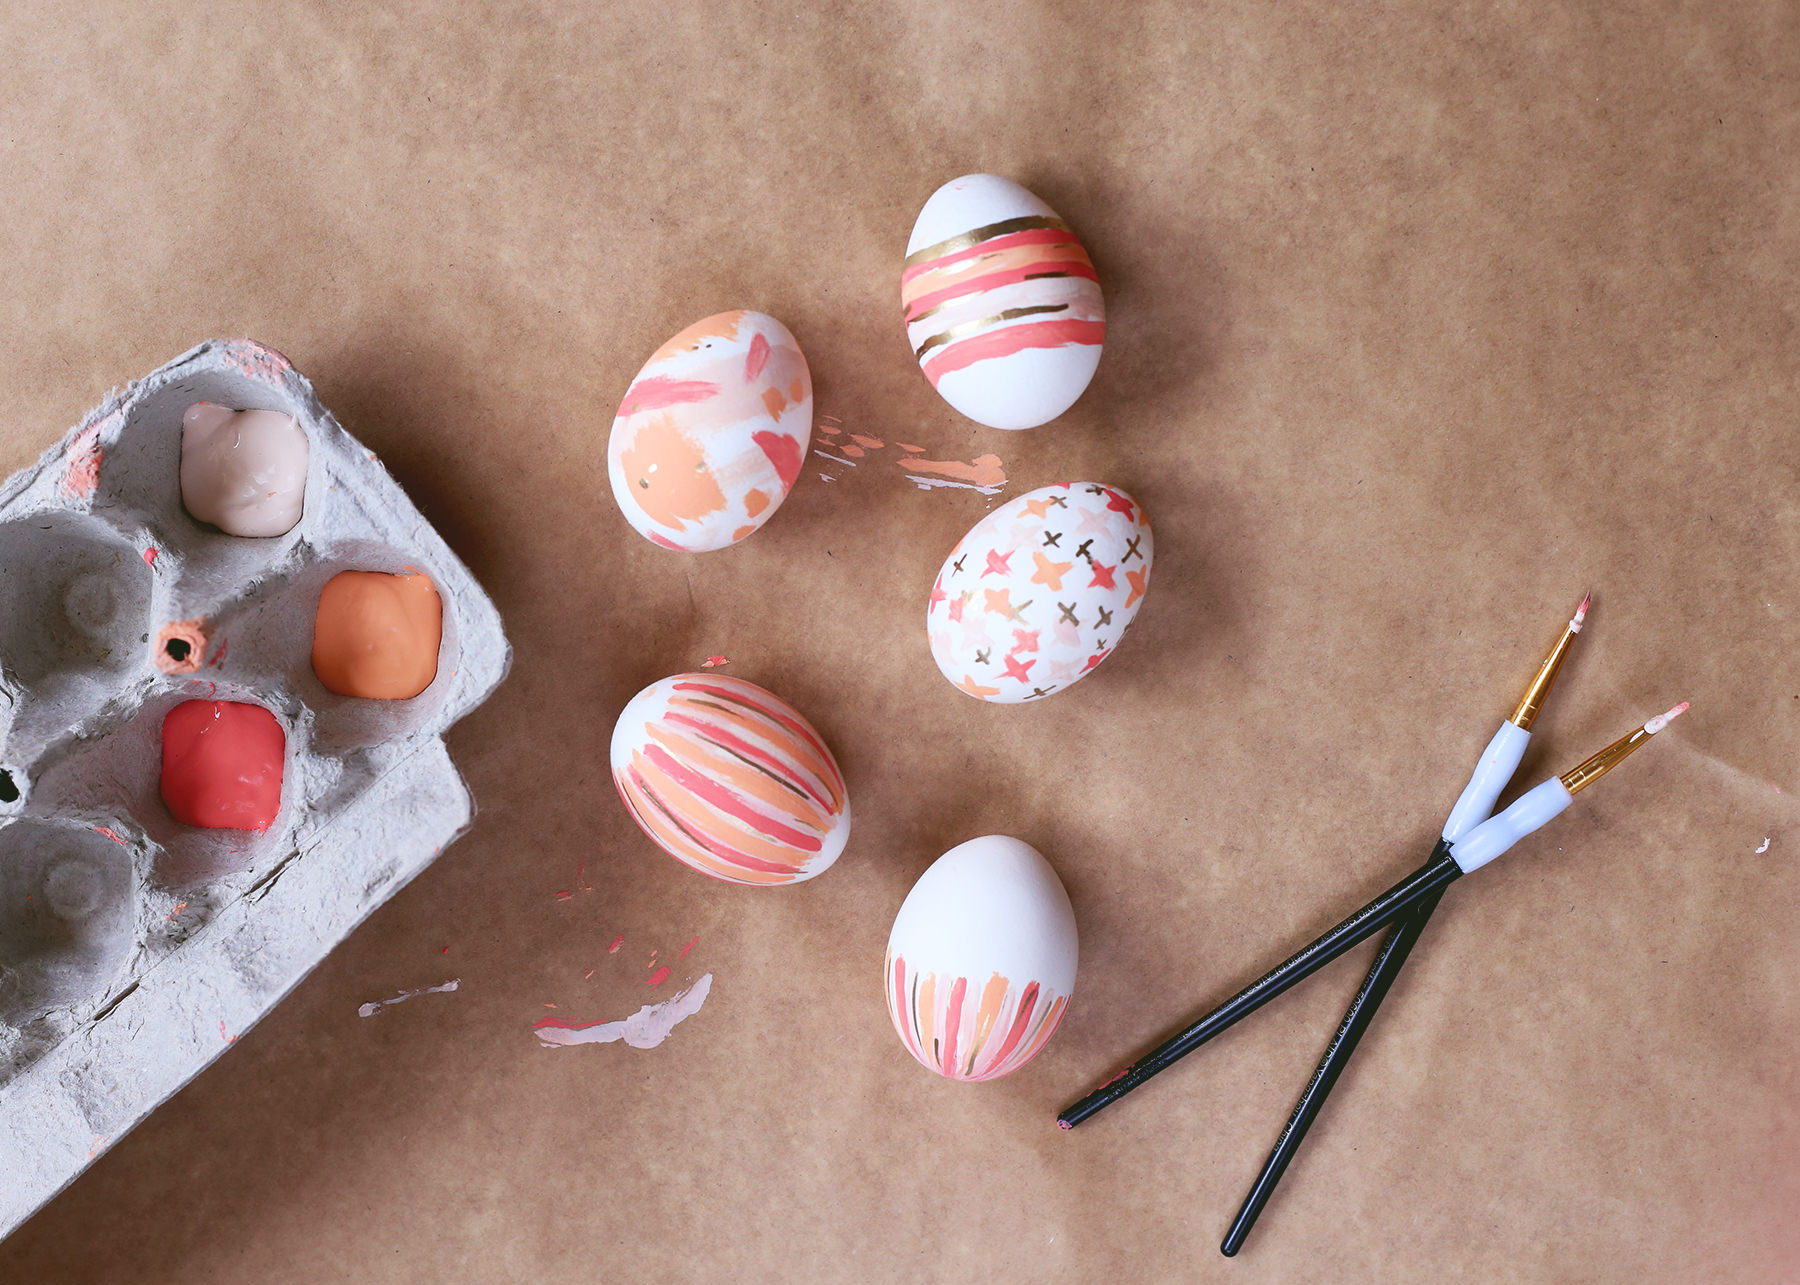 For an easy, dye free Easter DIY, grab some paint and follow these simple instructions!